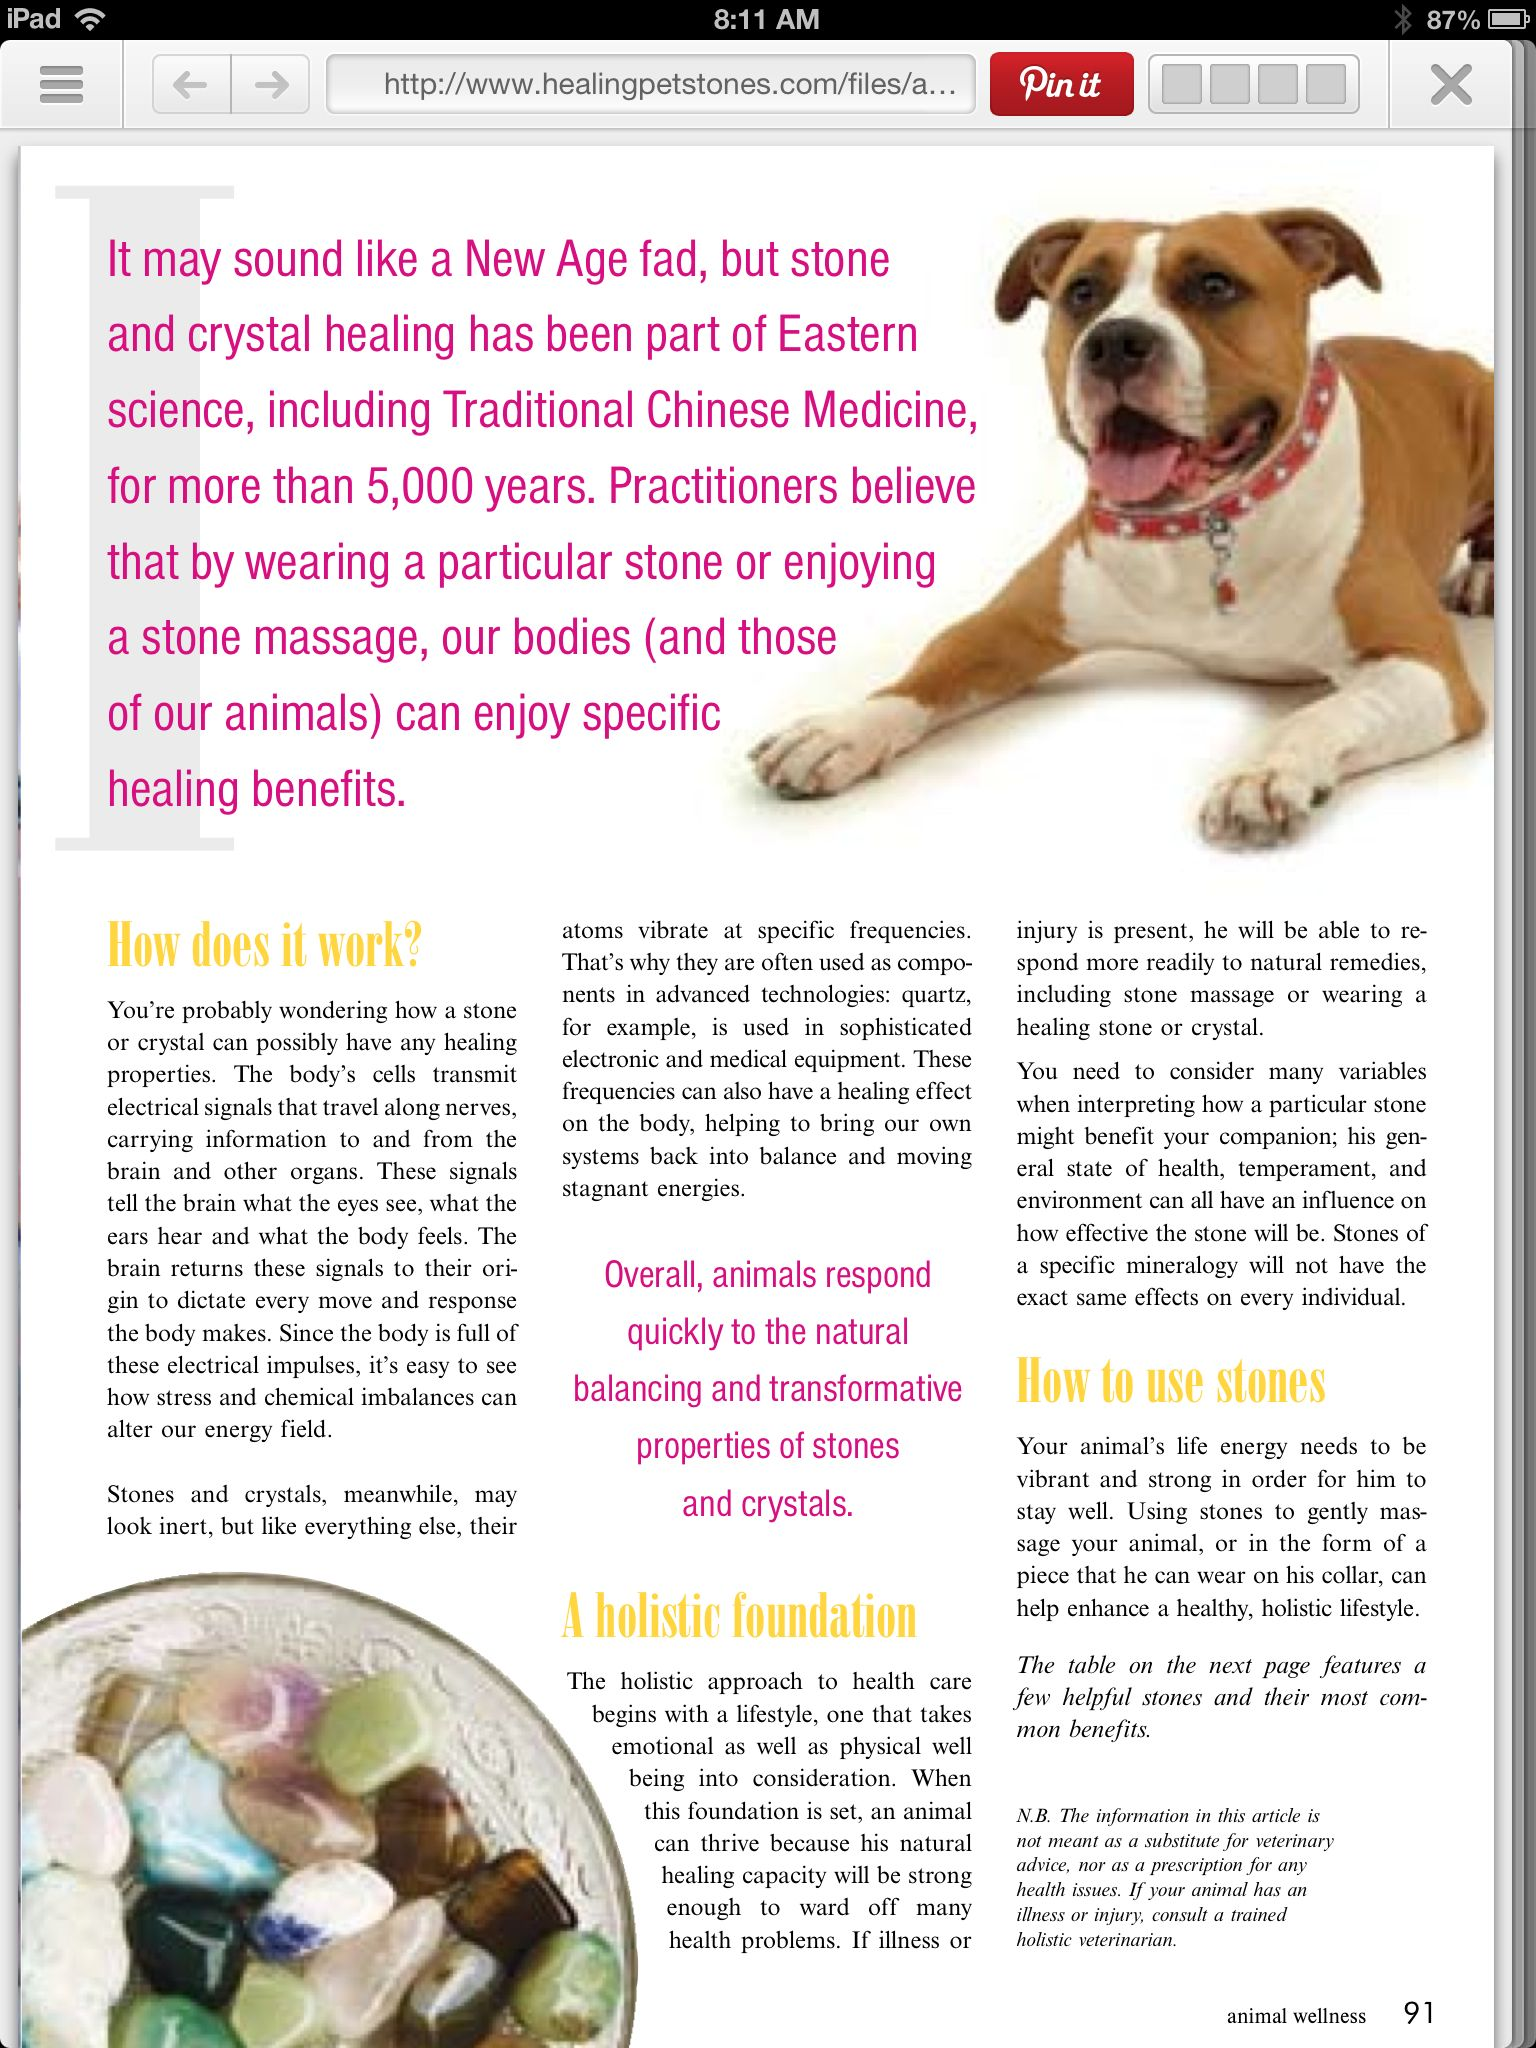 Healing stones for our pets!